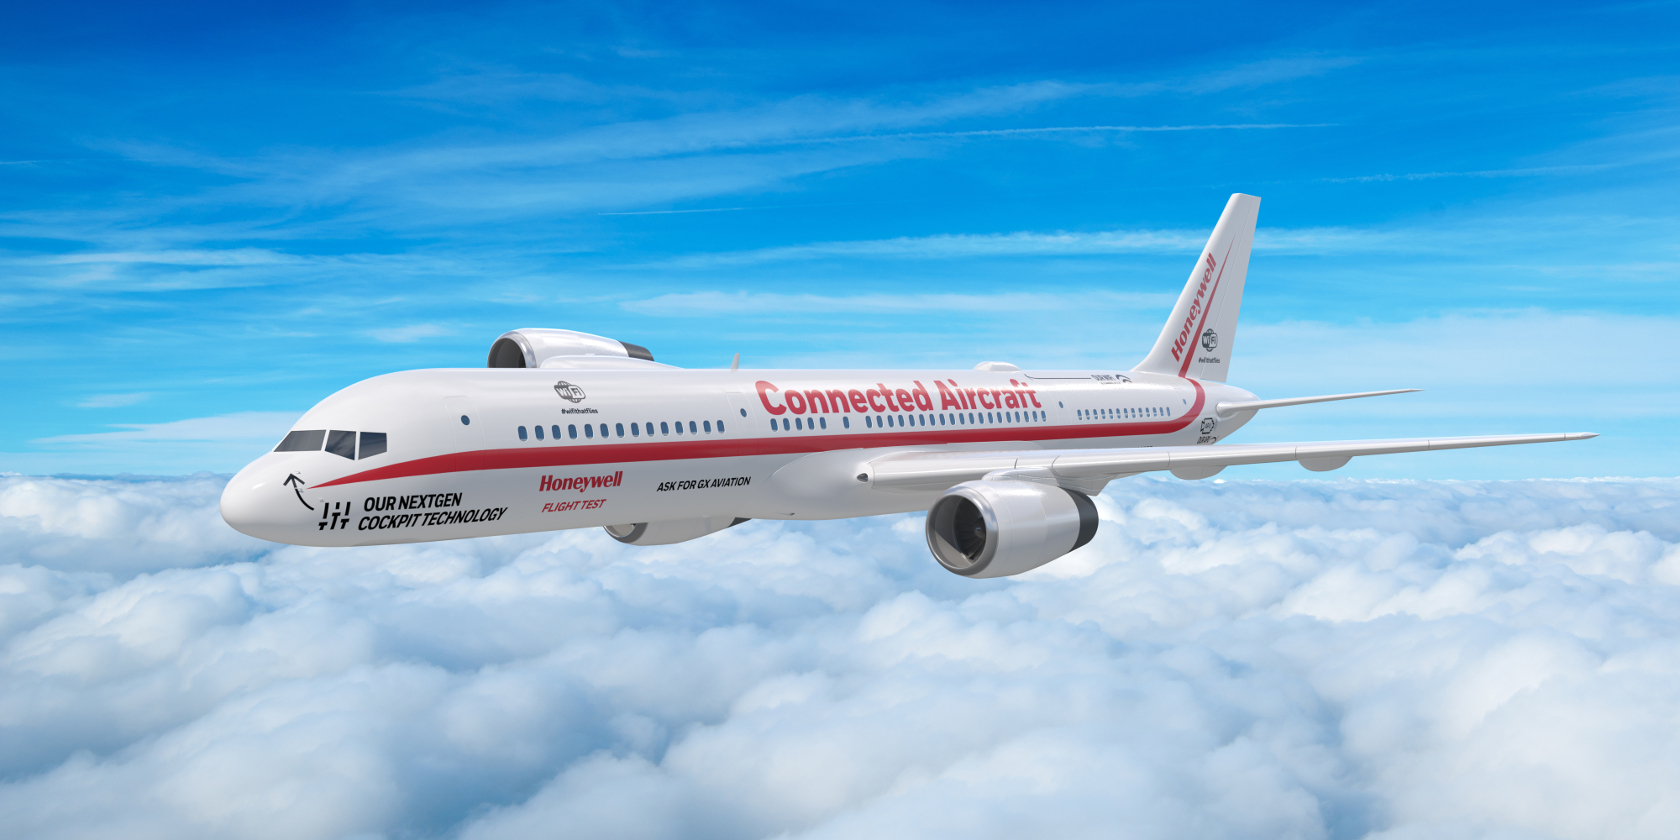 Honeywell Connects Aircraft to IoT With Satellite Wi-Fi